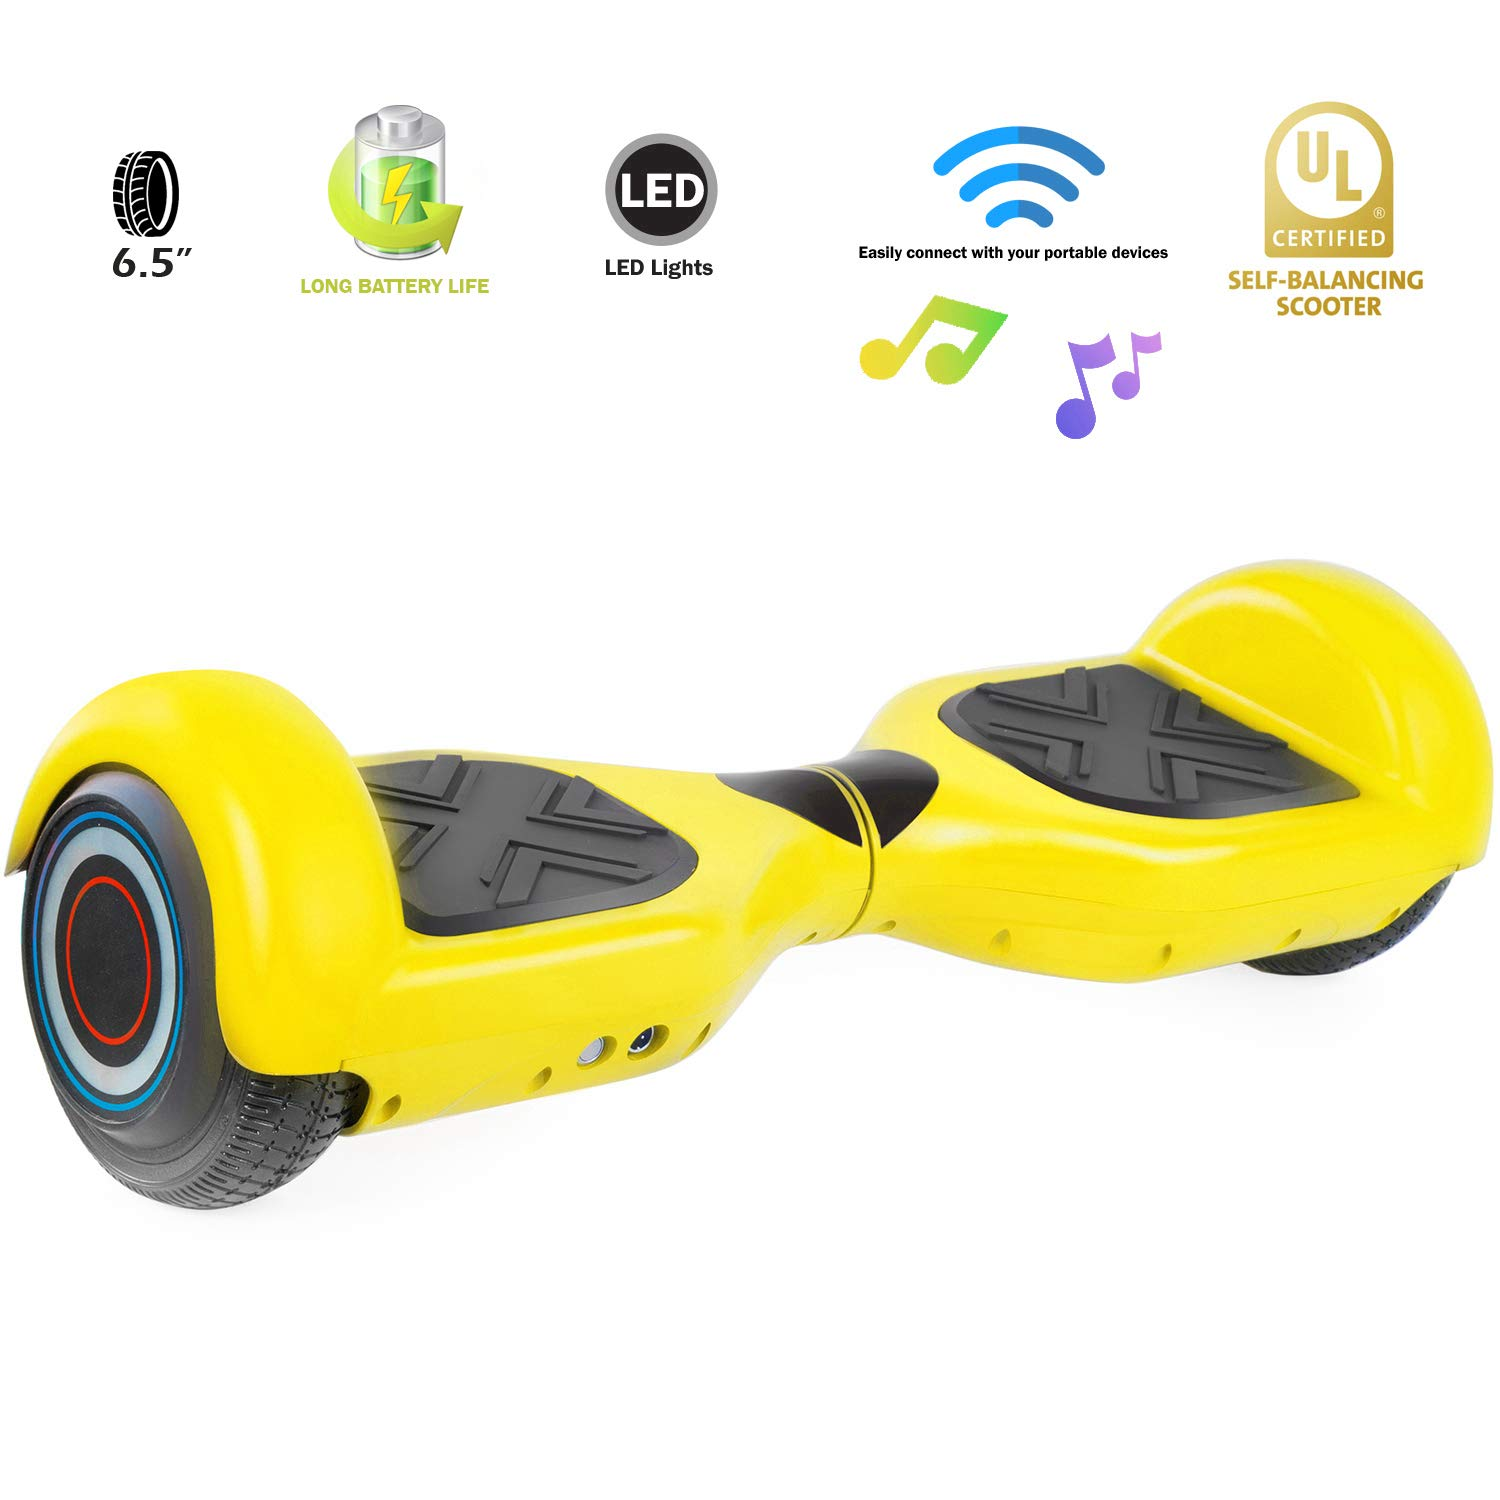 XPRIT Easter Sale Hoverboard w/Bluetooth Speaker (Yellow) by XPRIT (Image #5)